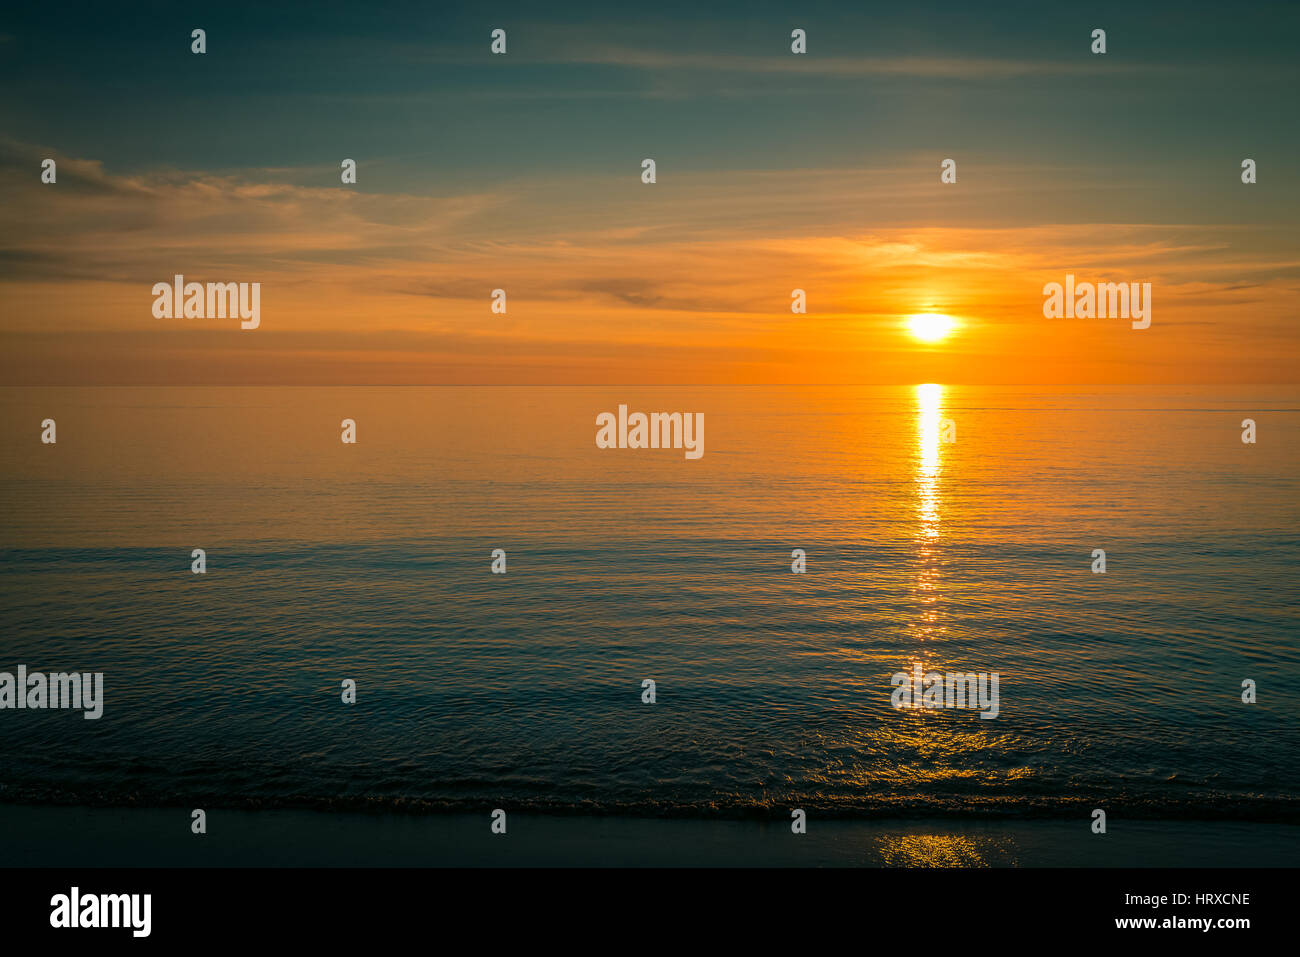 Sunset over the ocean, South Australia - Stock Image